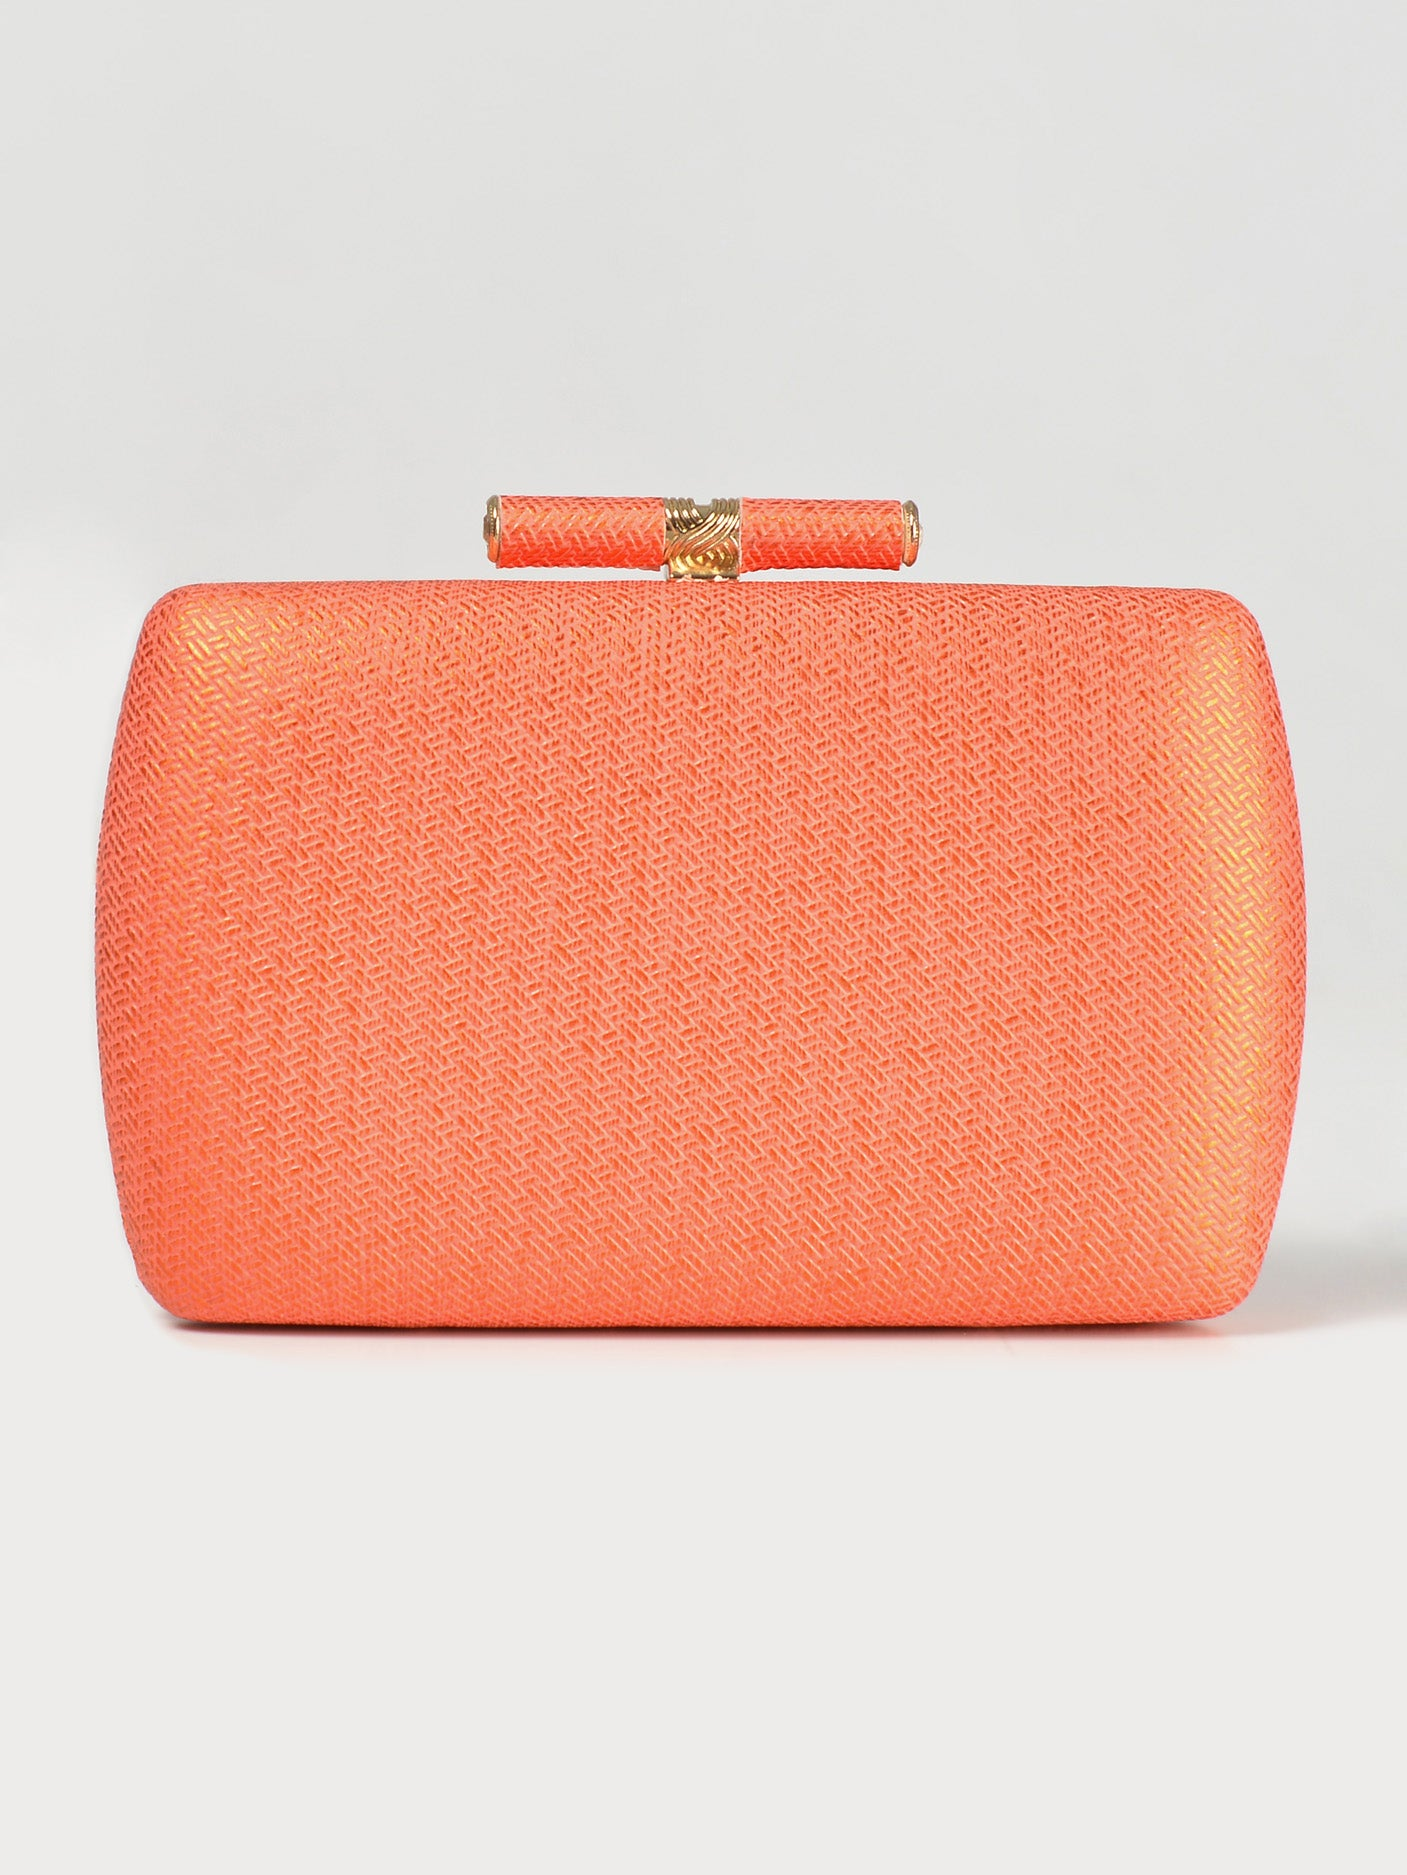 Gleaming Textured Clutch